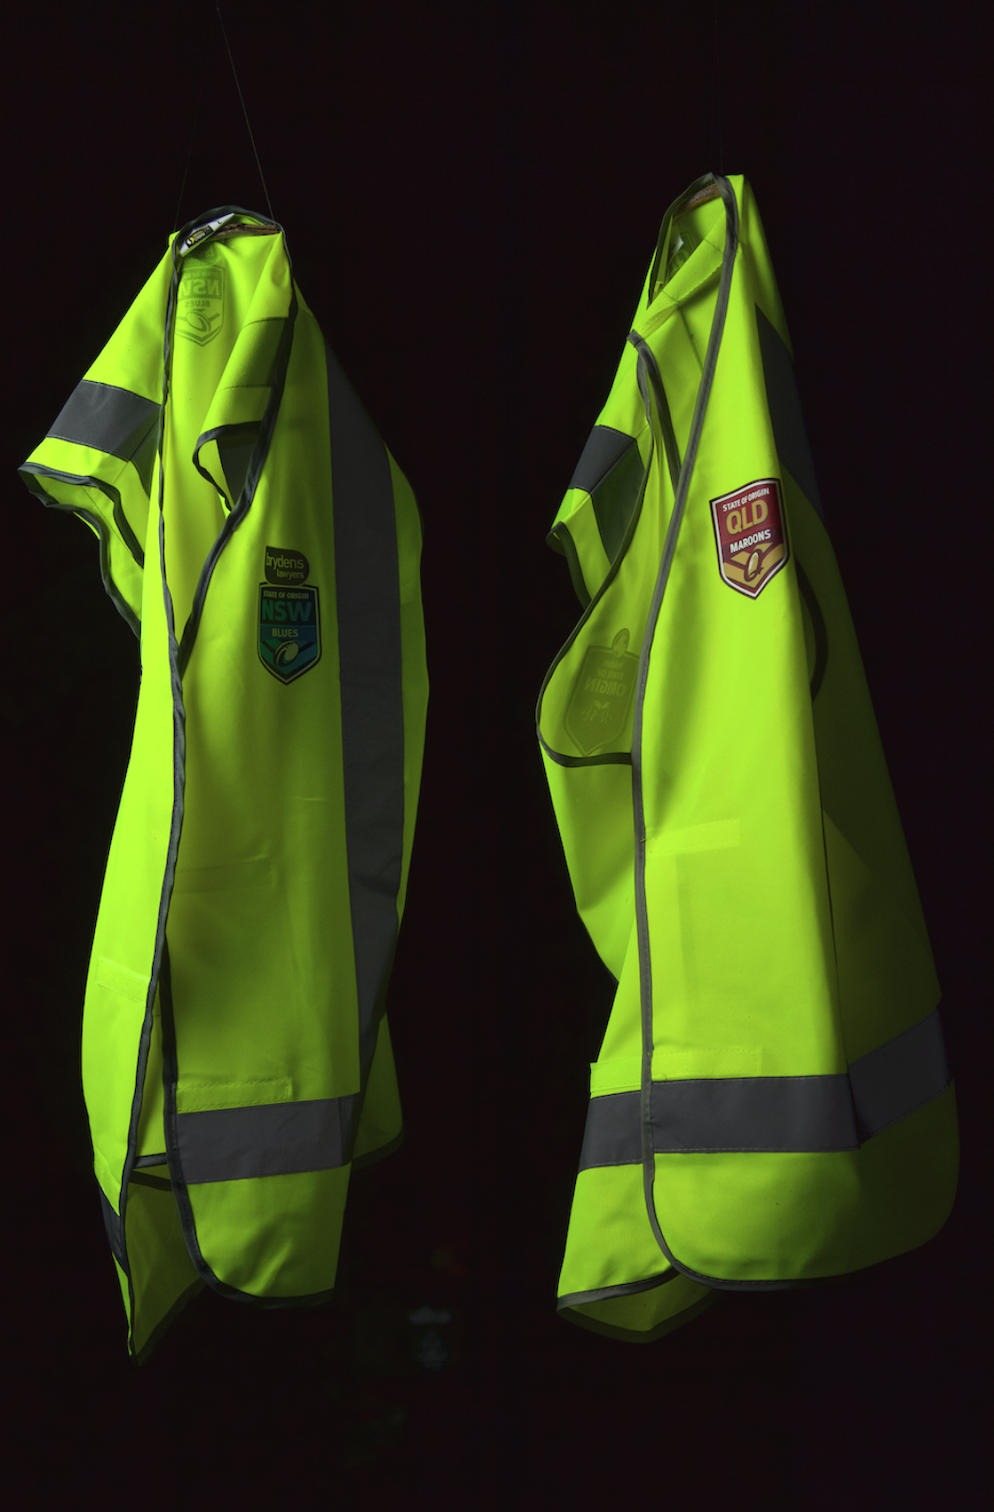 Signet's QLD and NSW State of Origin Safety Vests